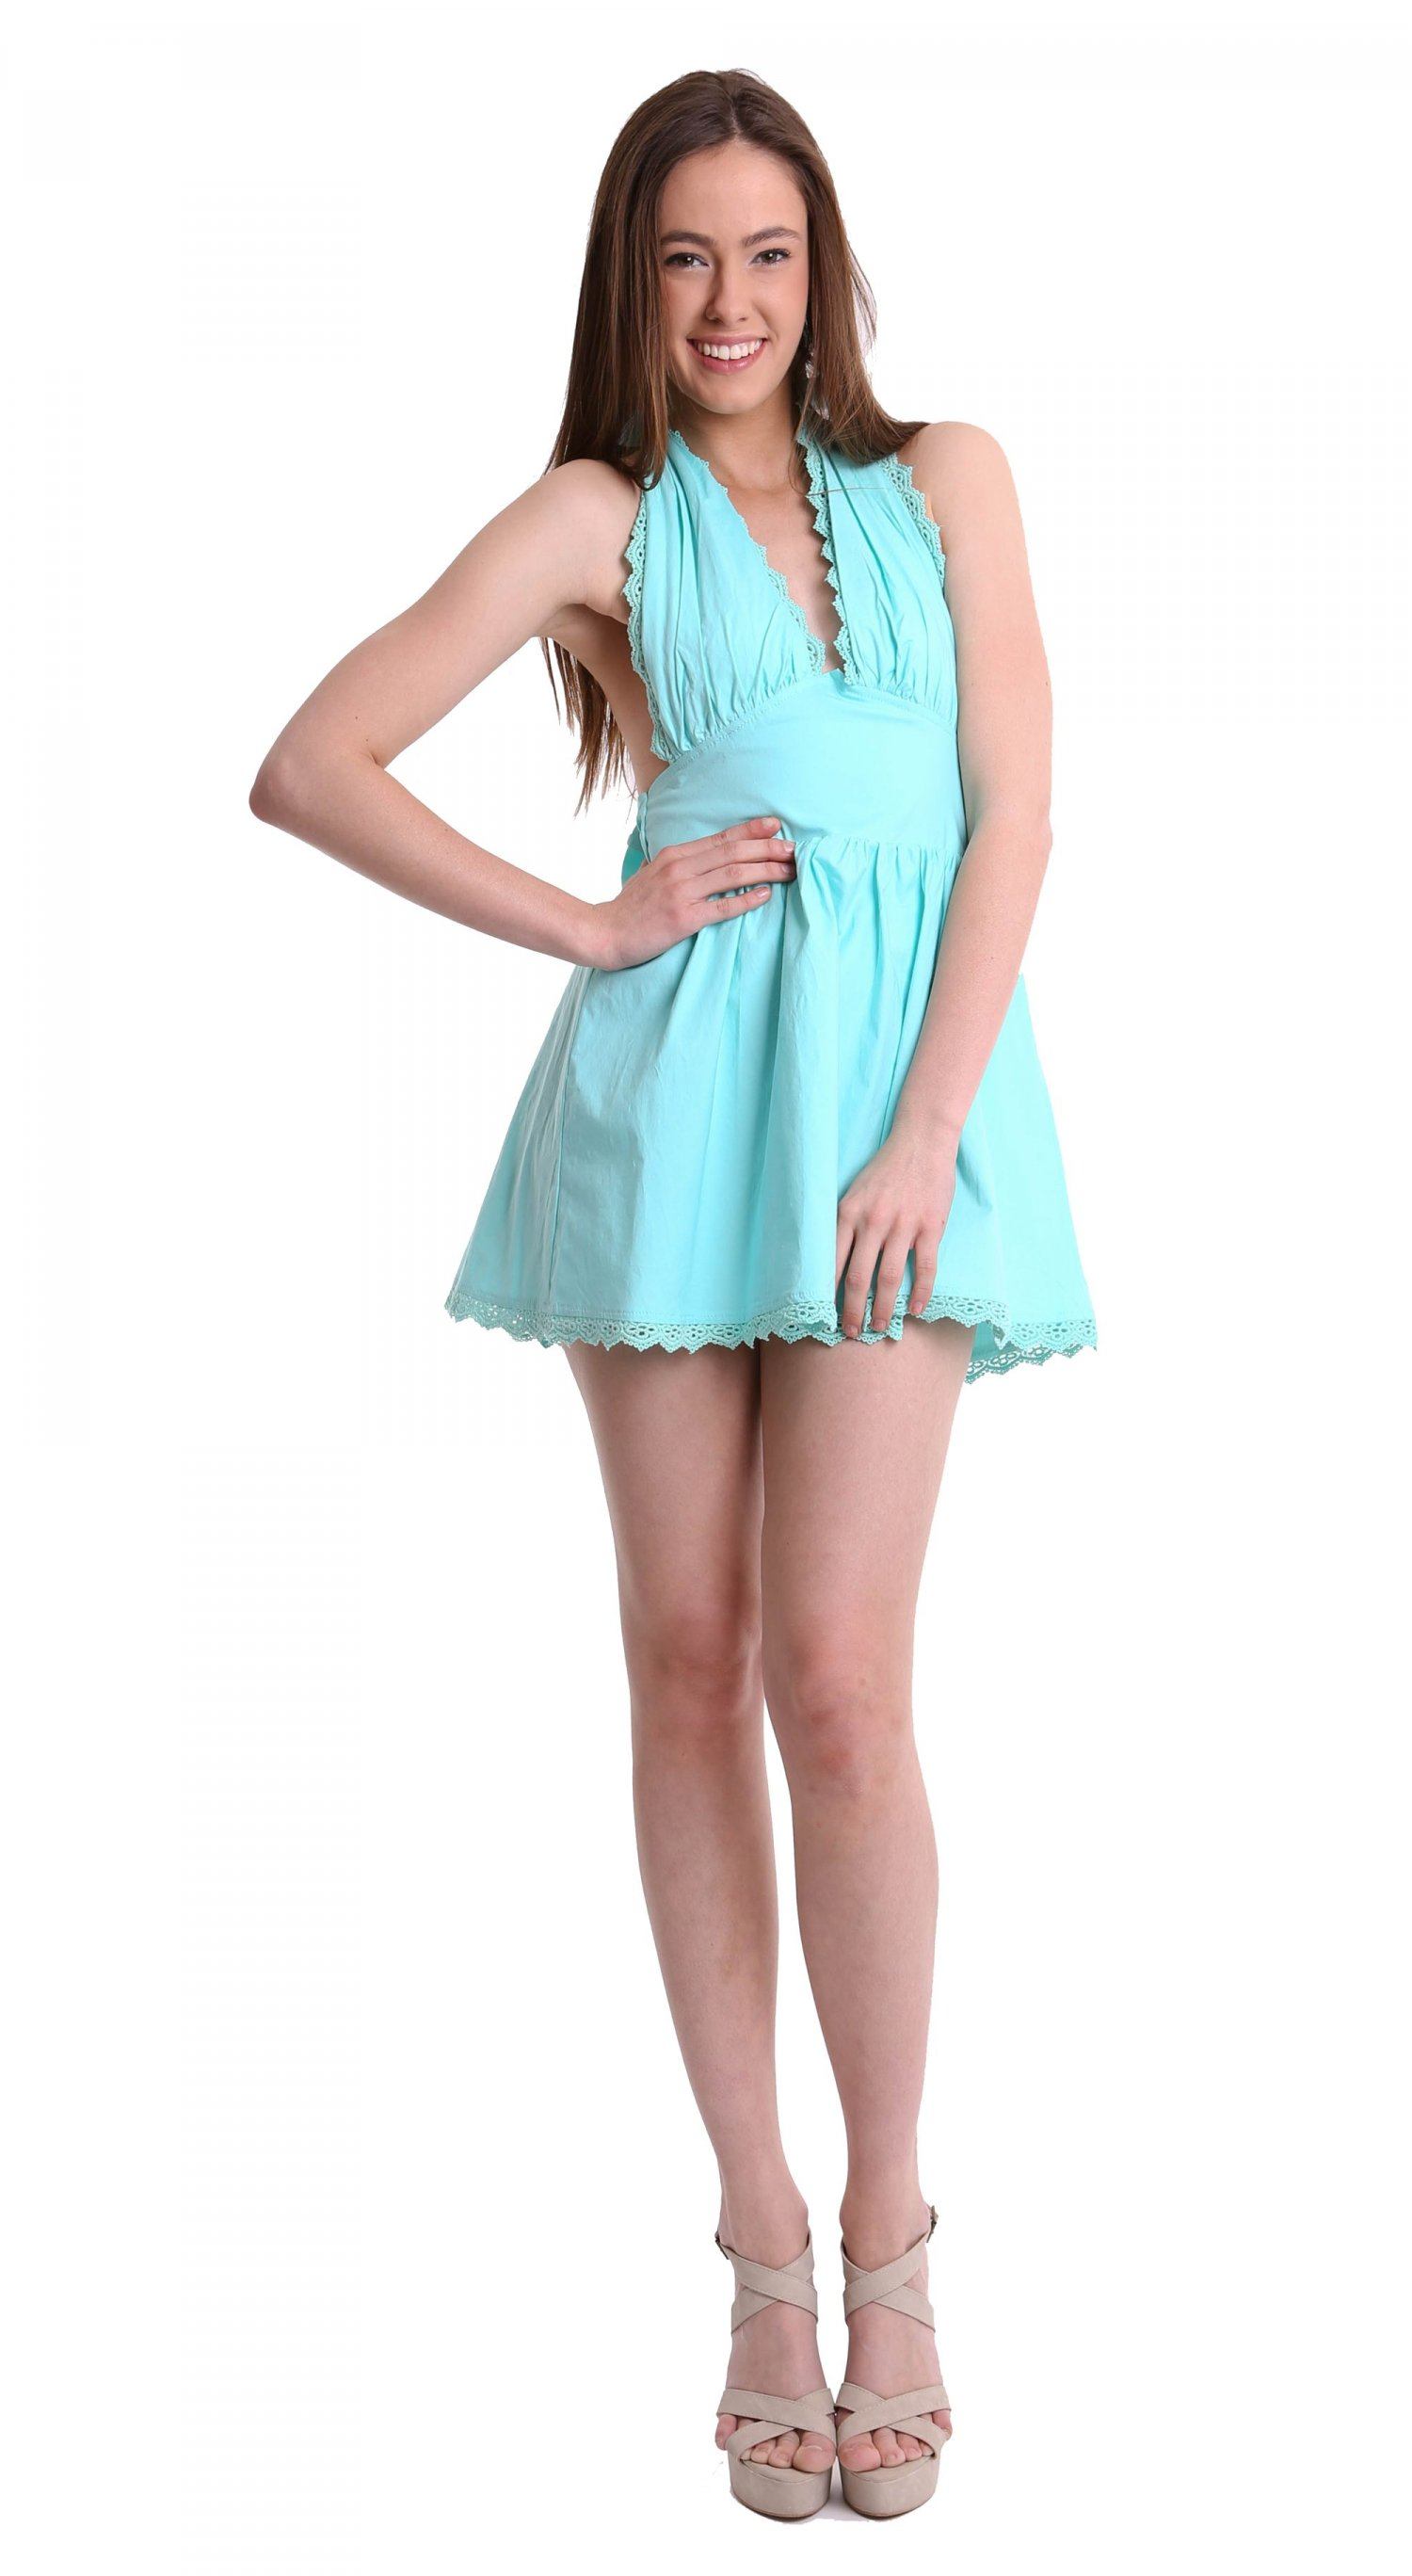 Teal halter dress with ribbon